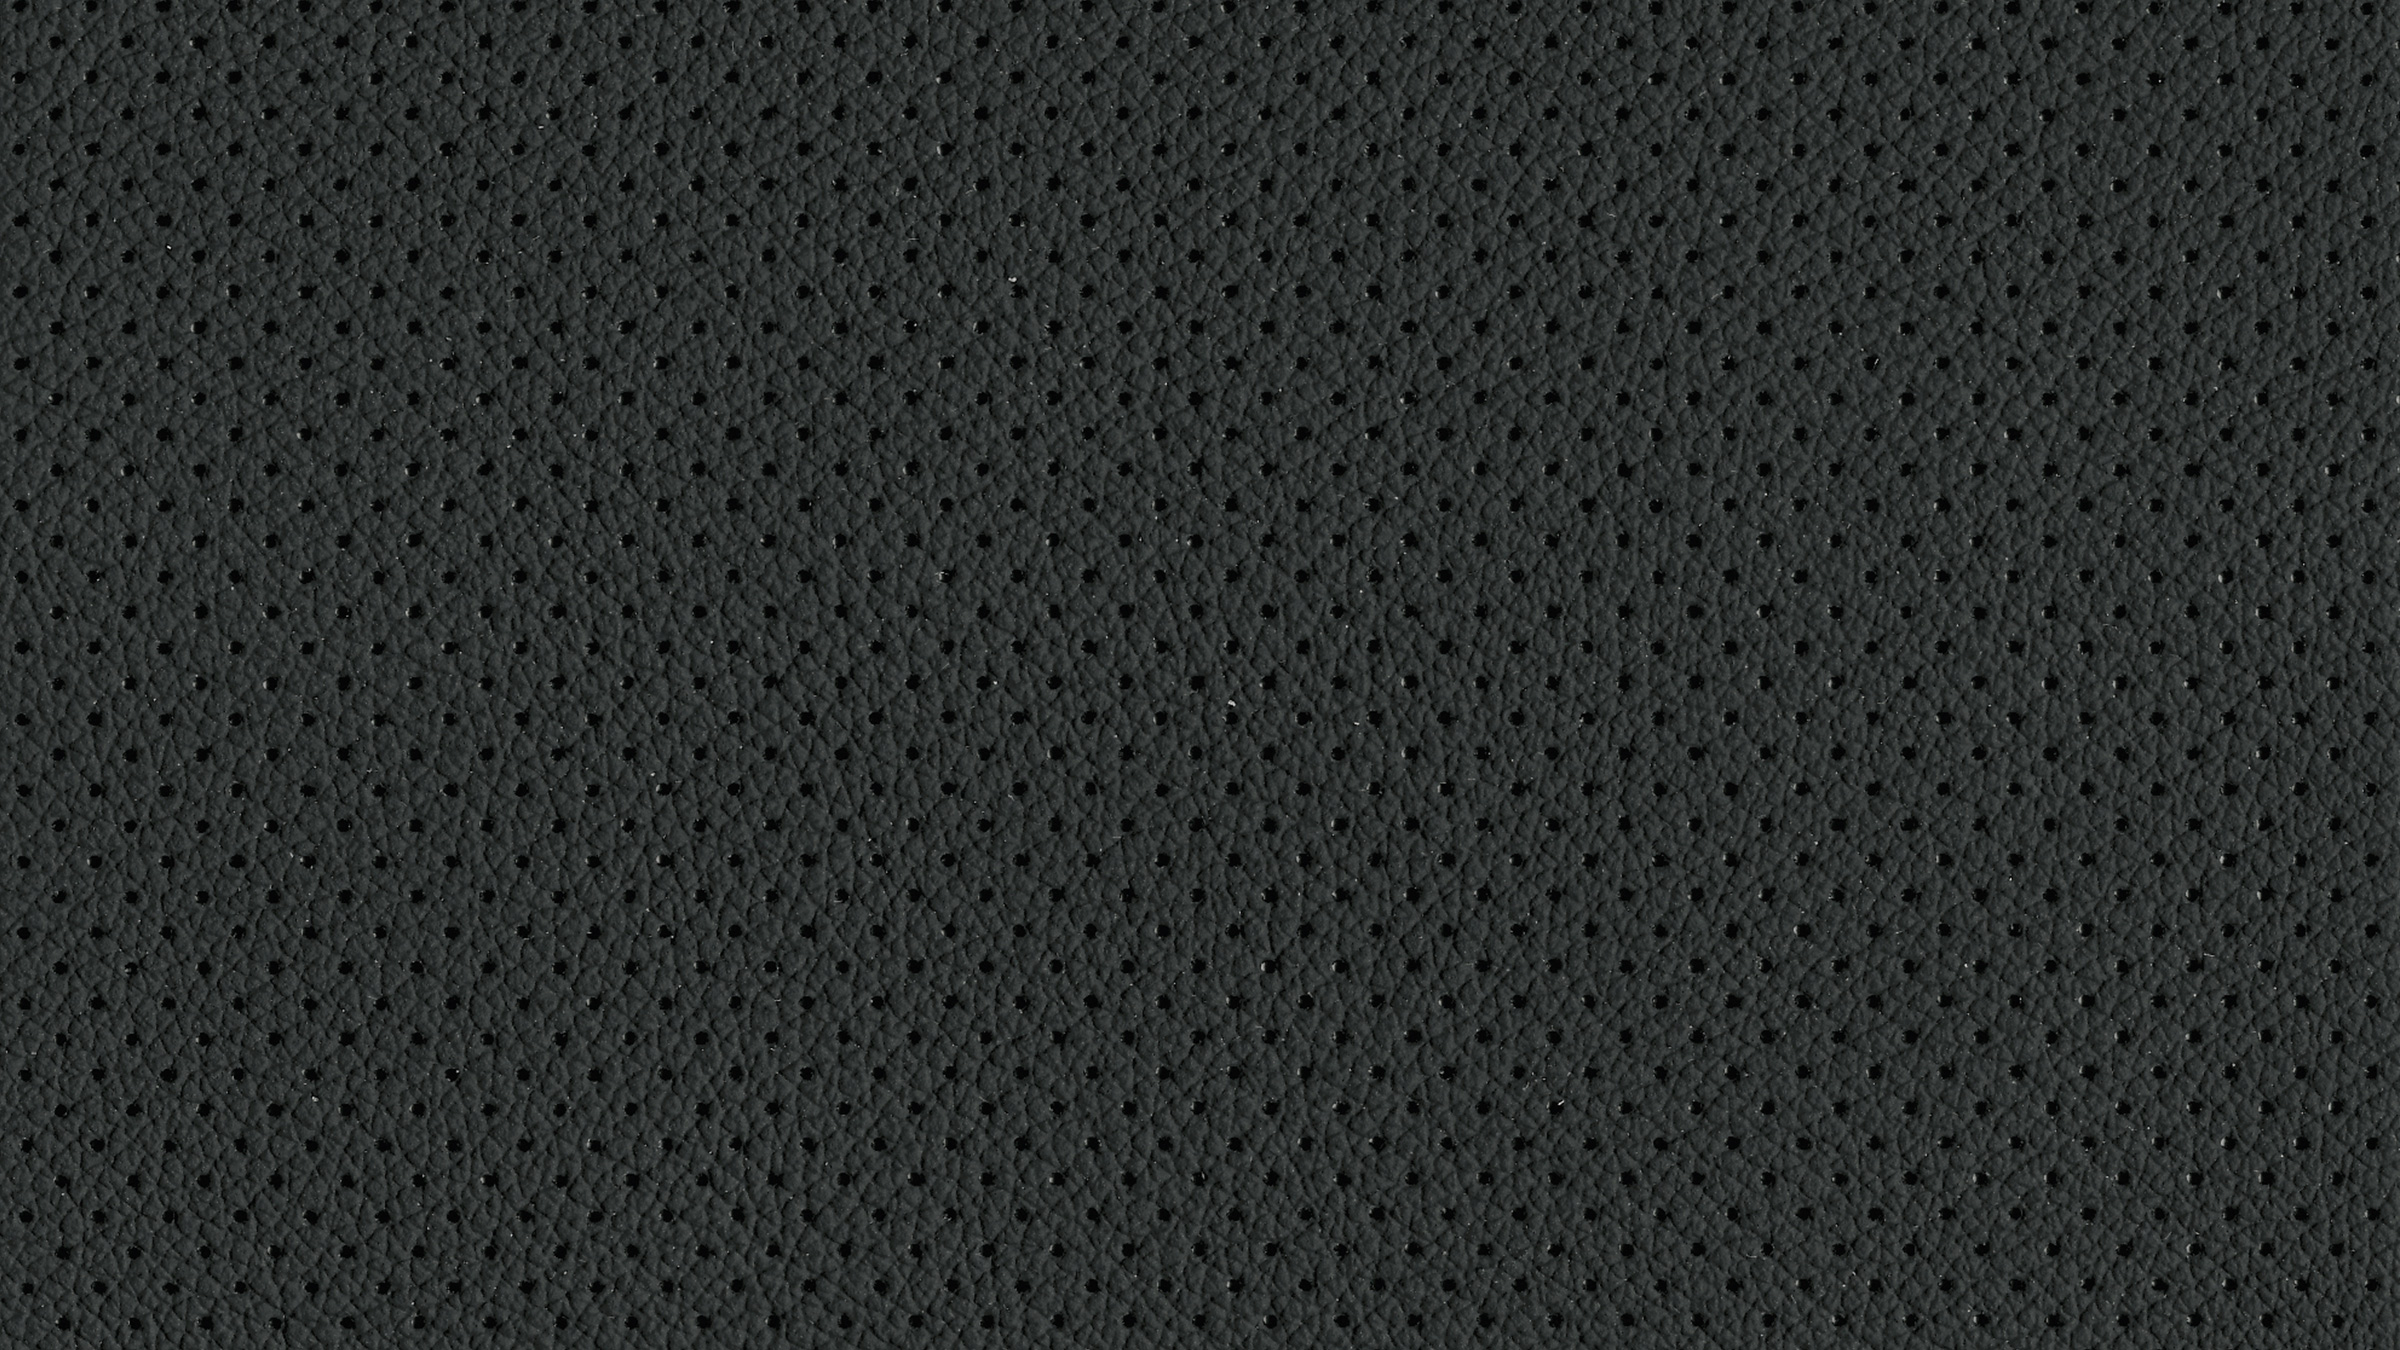 GRAPHITE LEATHER WITH PERFORATION